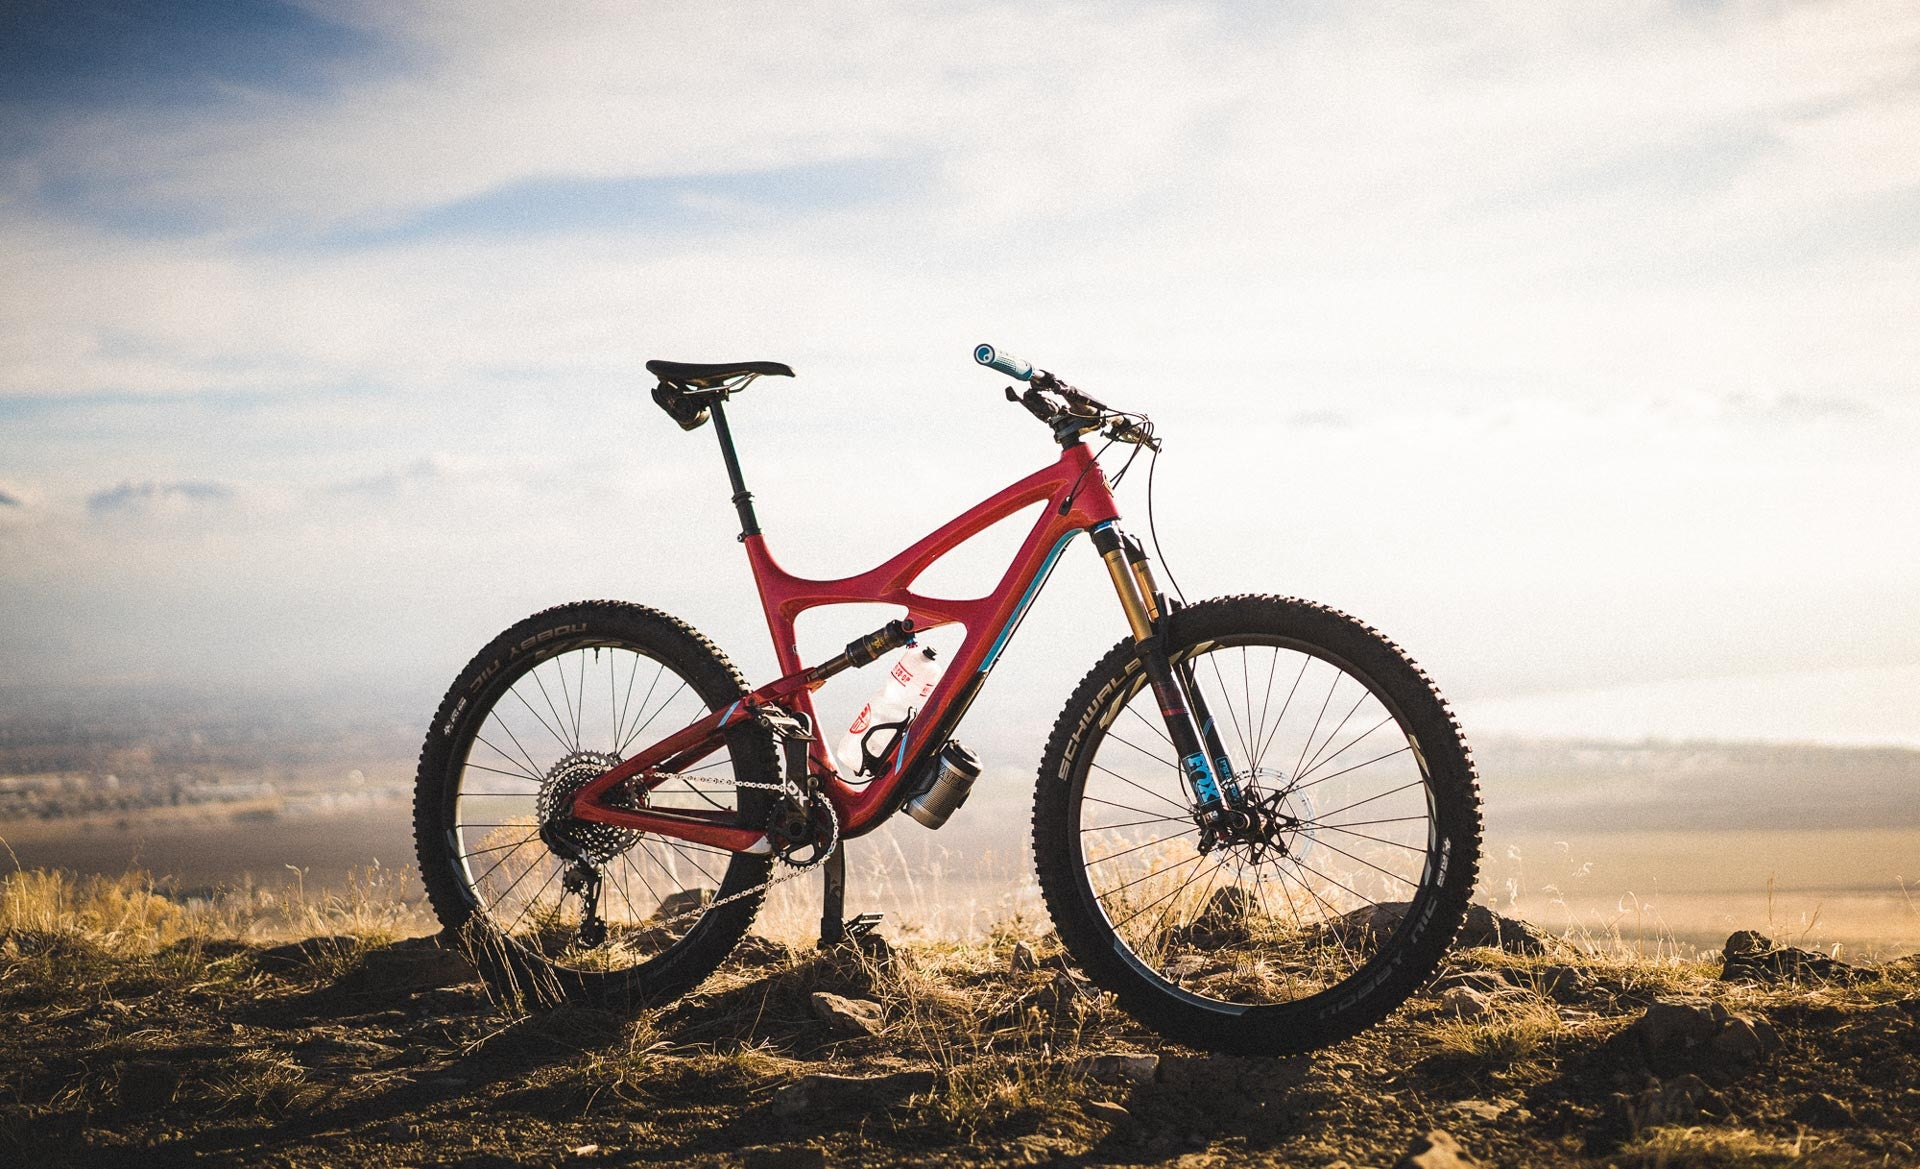 A red race car of a mountain bike